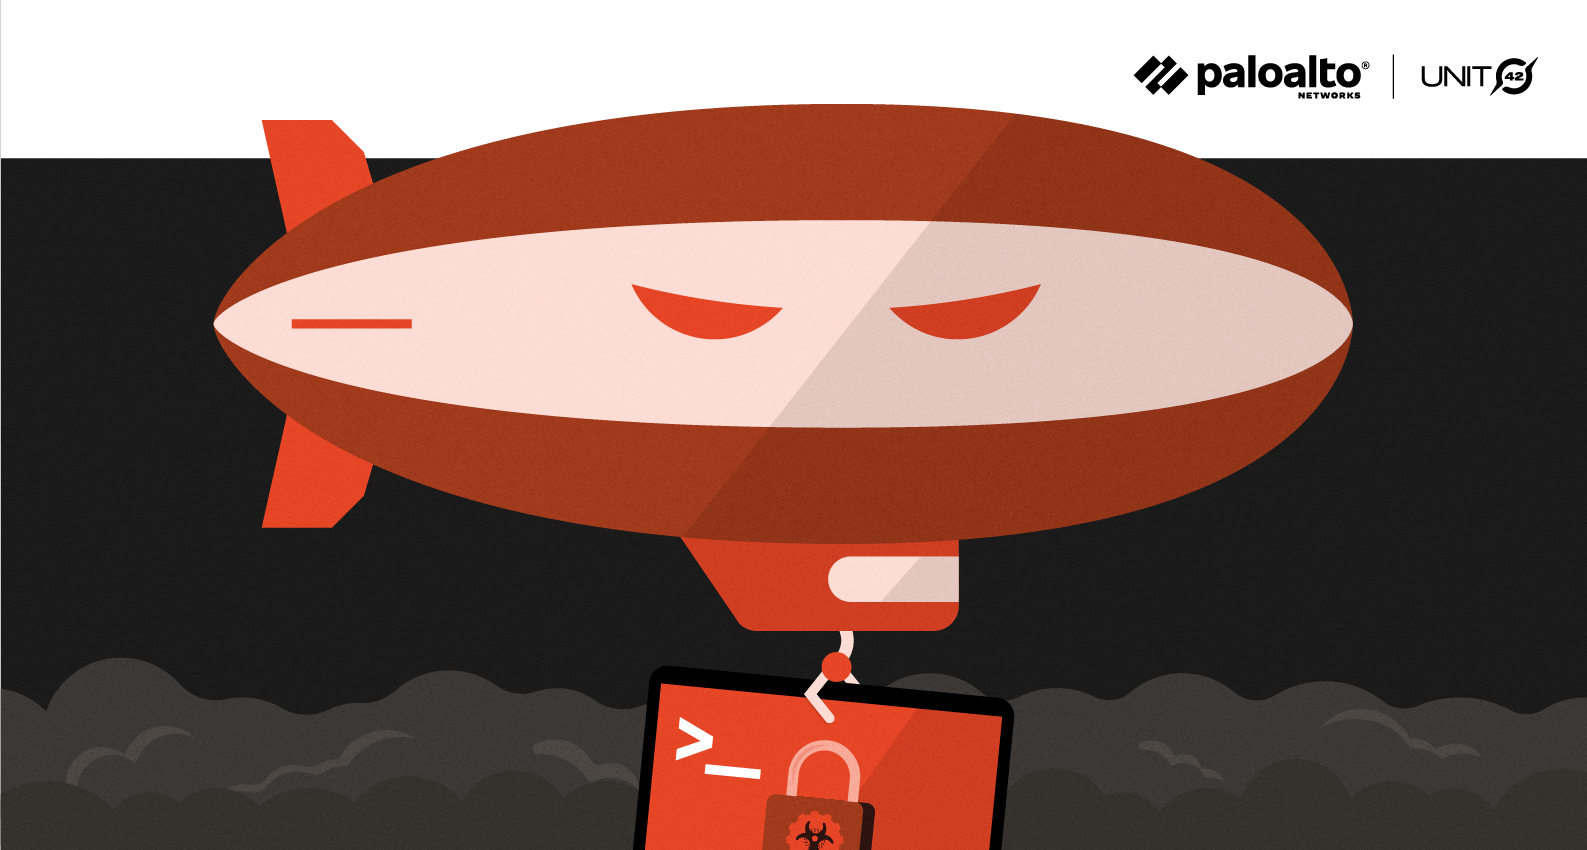 Conceptual image representing Zeppelin ransomware as part of the ransomware threat assessments companion to the 2021 Unit 42 Ransomware Threat Report.